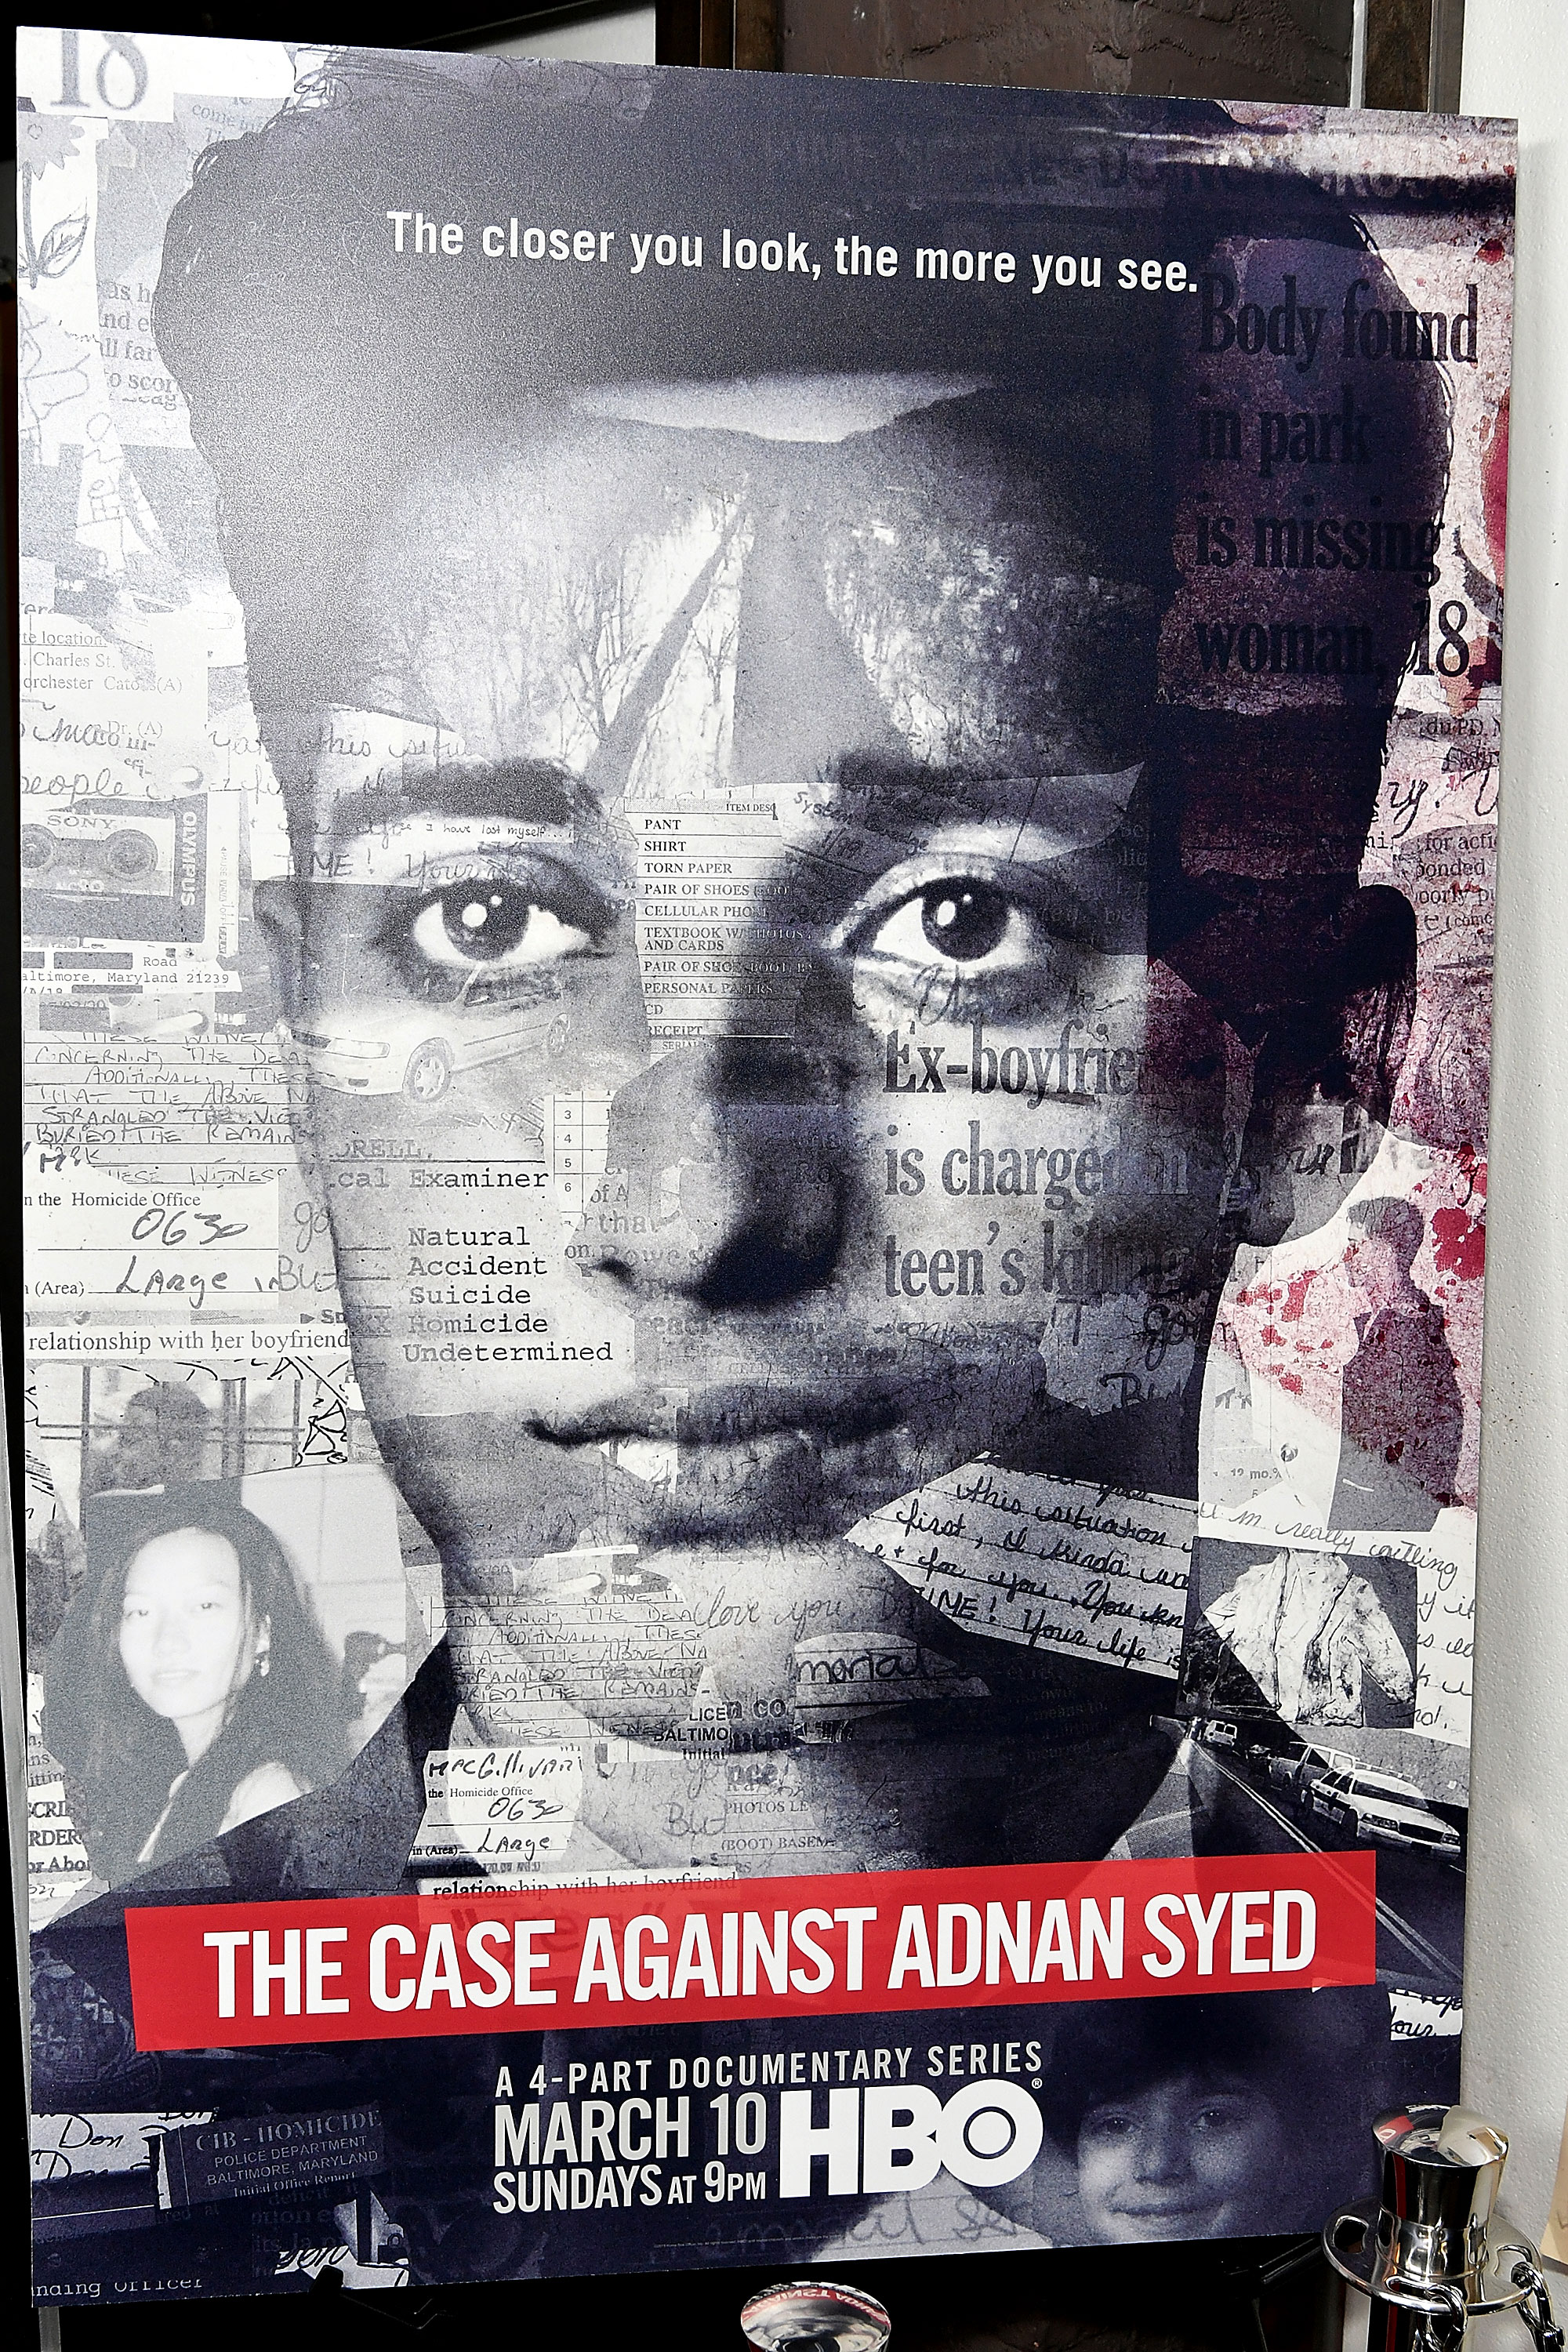 Who Is Adnan Syed? 5 Things to Know Ahead of HBO's Docuseries - Syed's story became a nationwide phenomena after the Serial podcast made it the focal point of season 1, which premiered in October 2014.